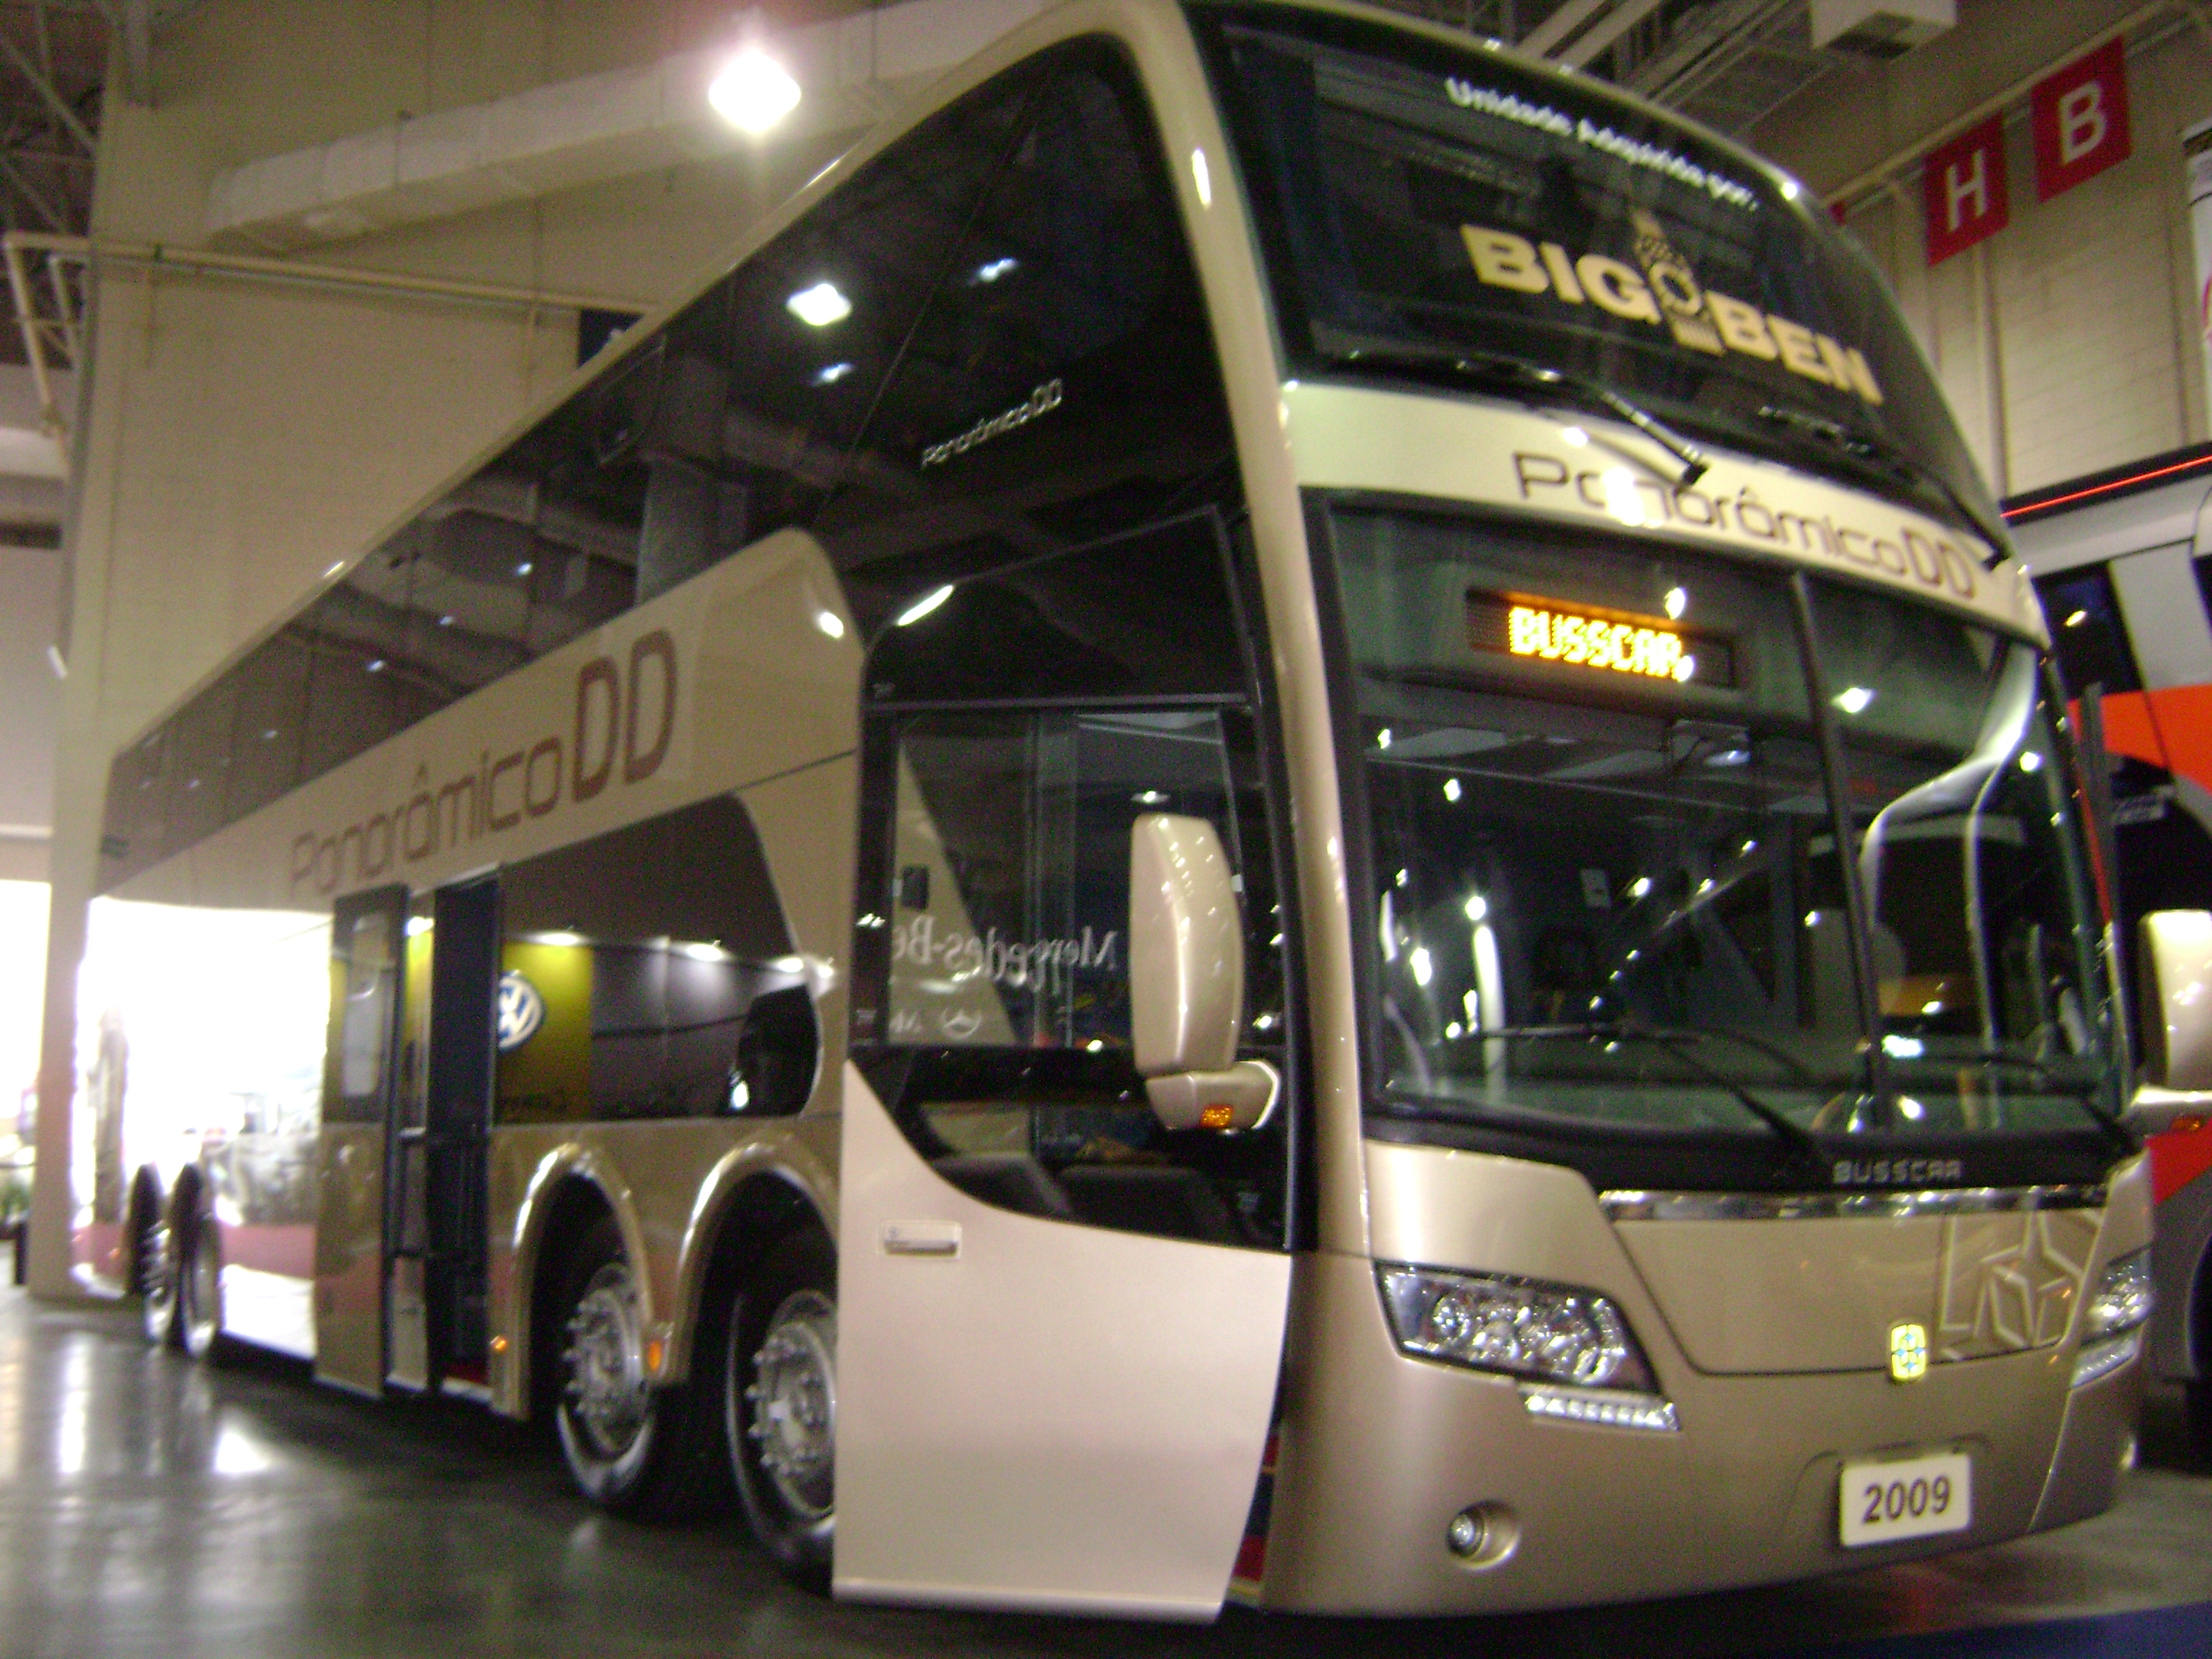 Busscar panoramico photo - 2